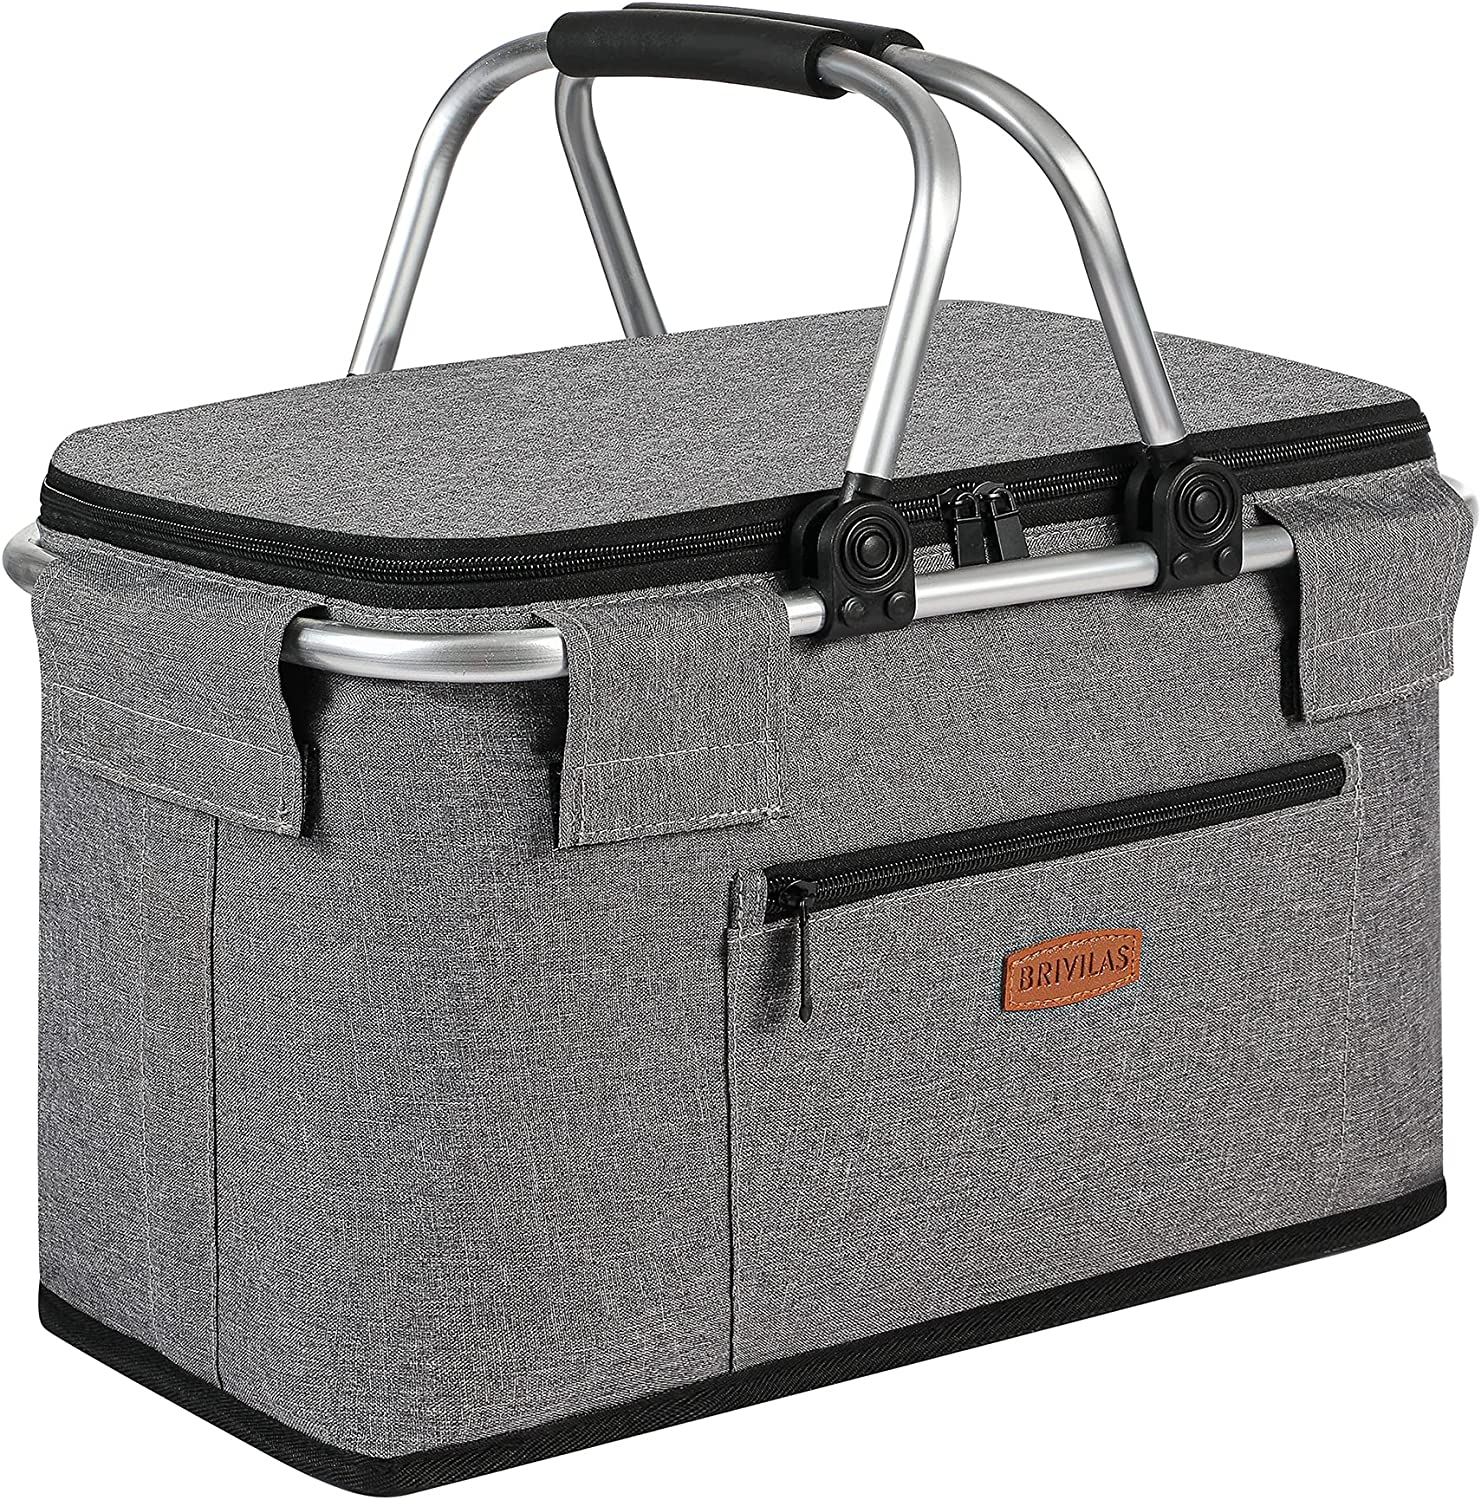 [Alternative dealer] 22L Leakproof Brivilas Insulated Cool Baskets-Collapsible Ranking TOP2 Picnic